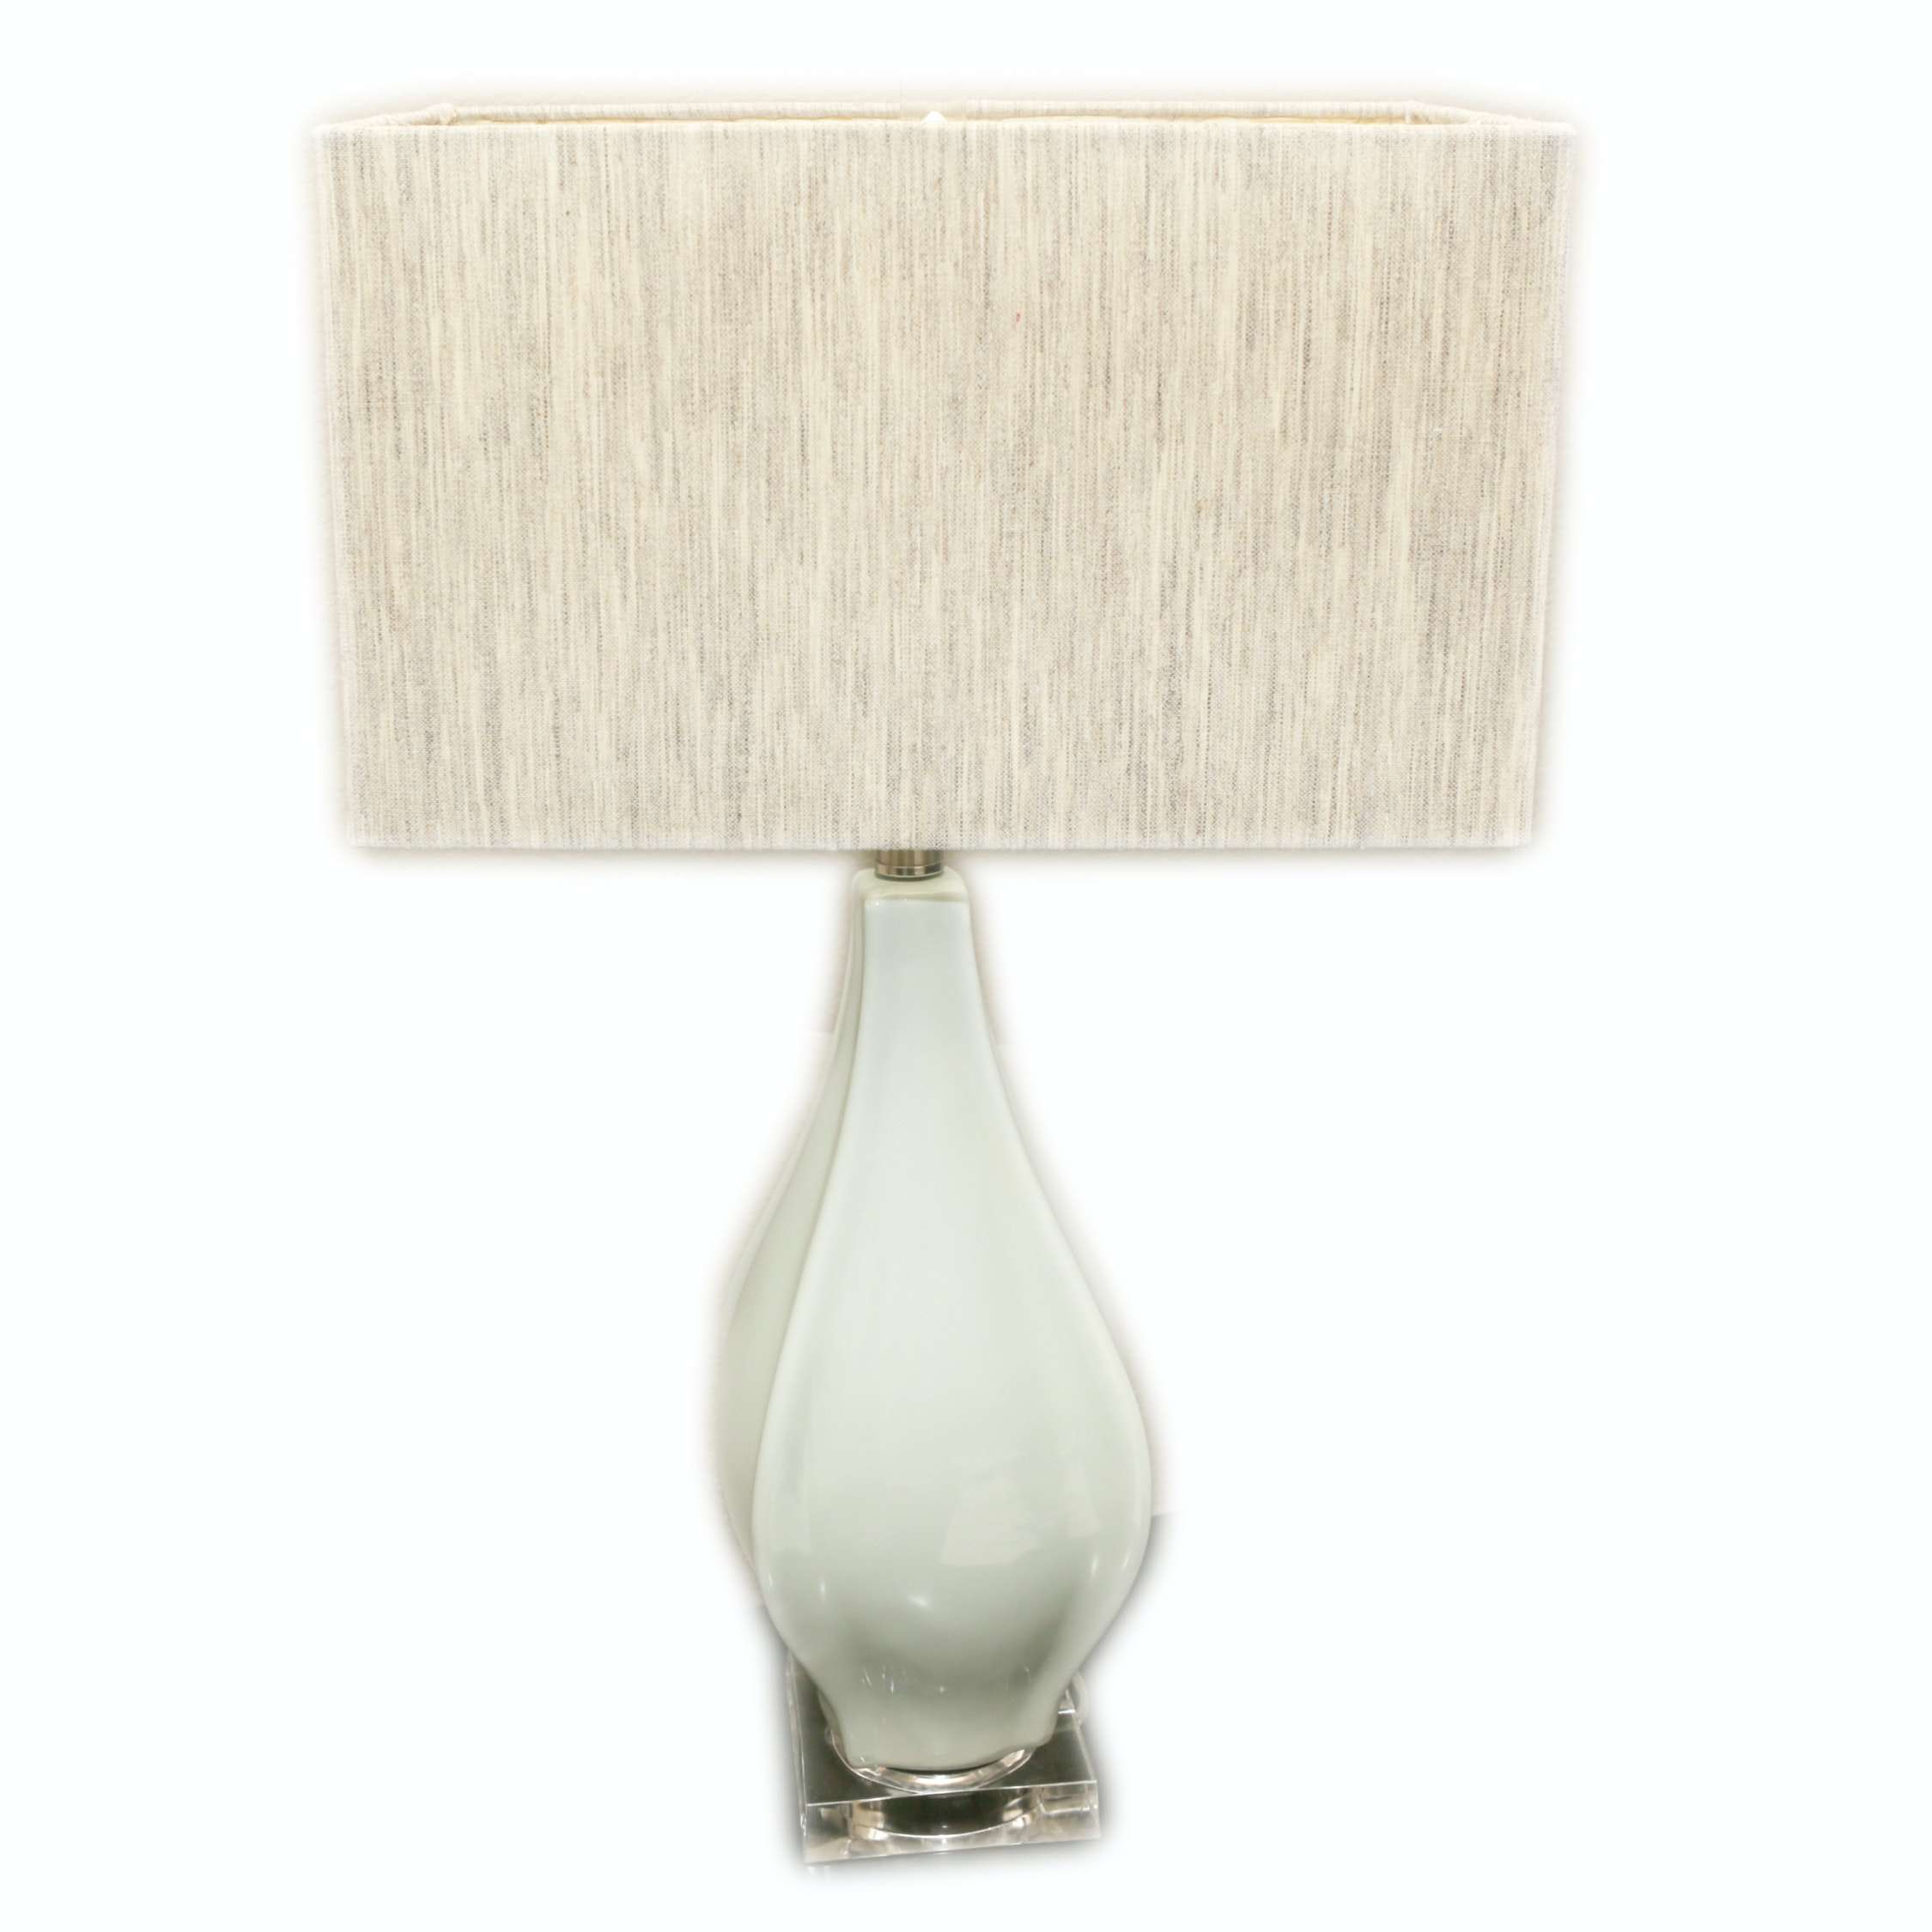 White Ceramic Table Lamp with Acrylic Base and Tan Fabric Rectangular Shade